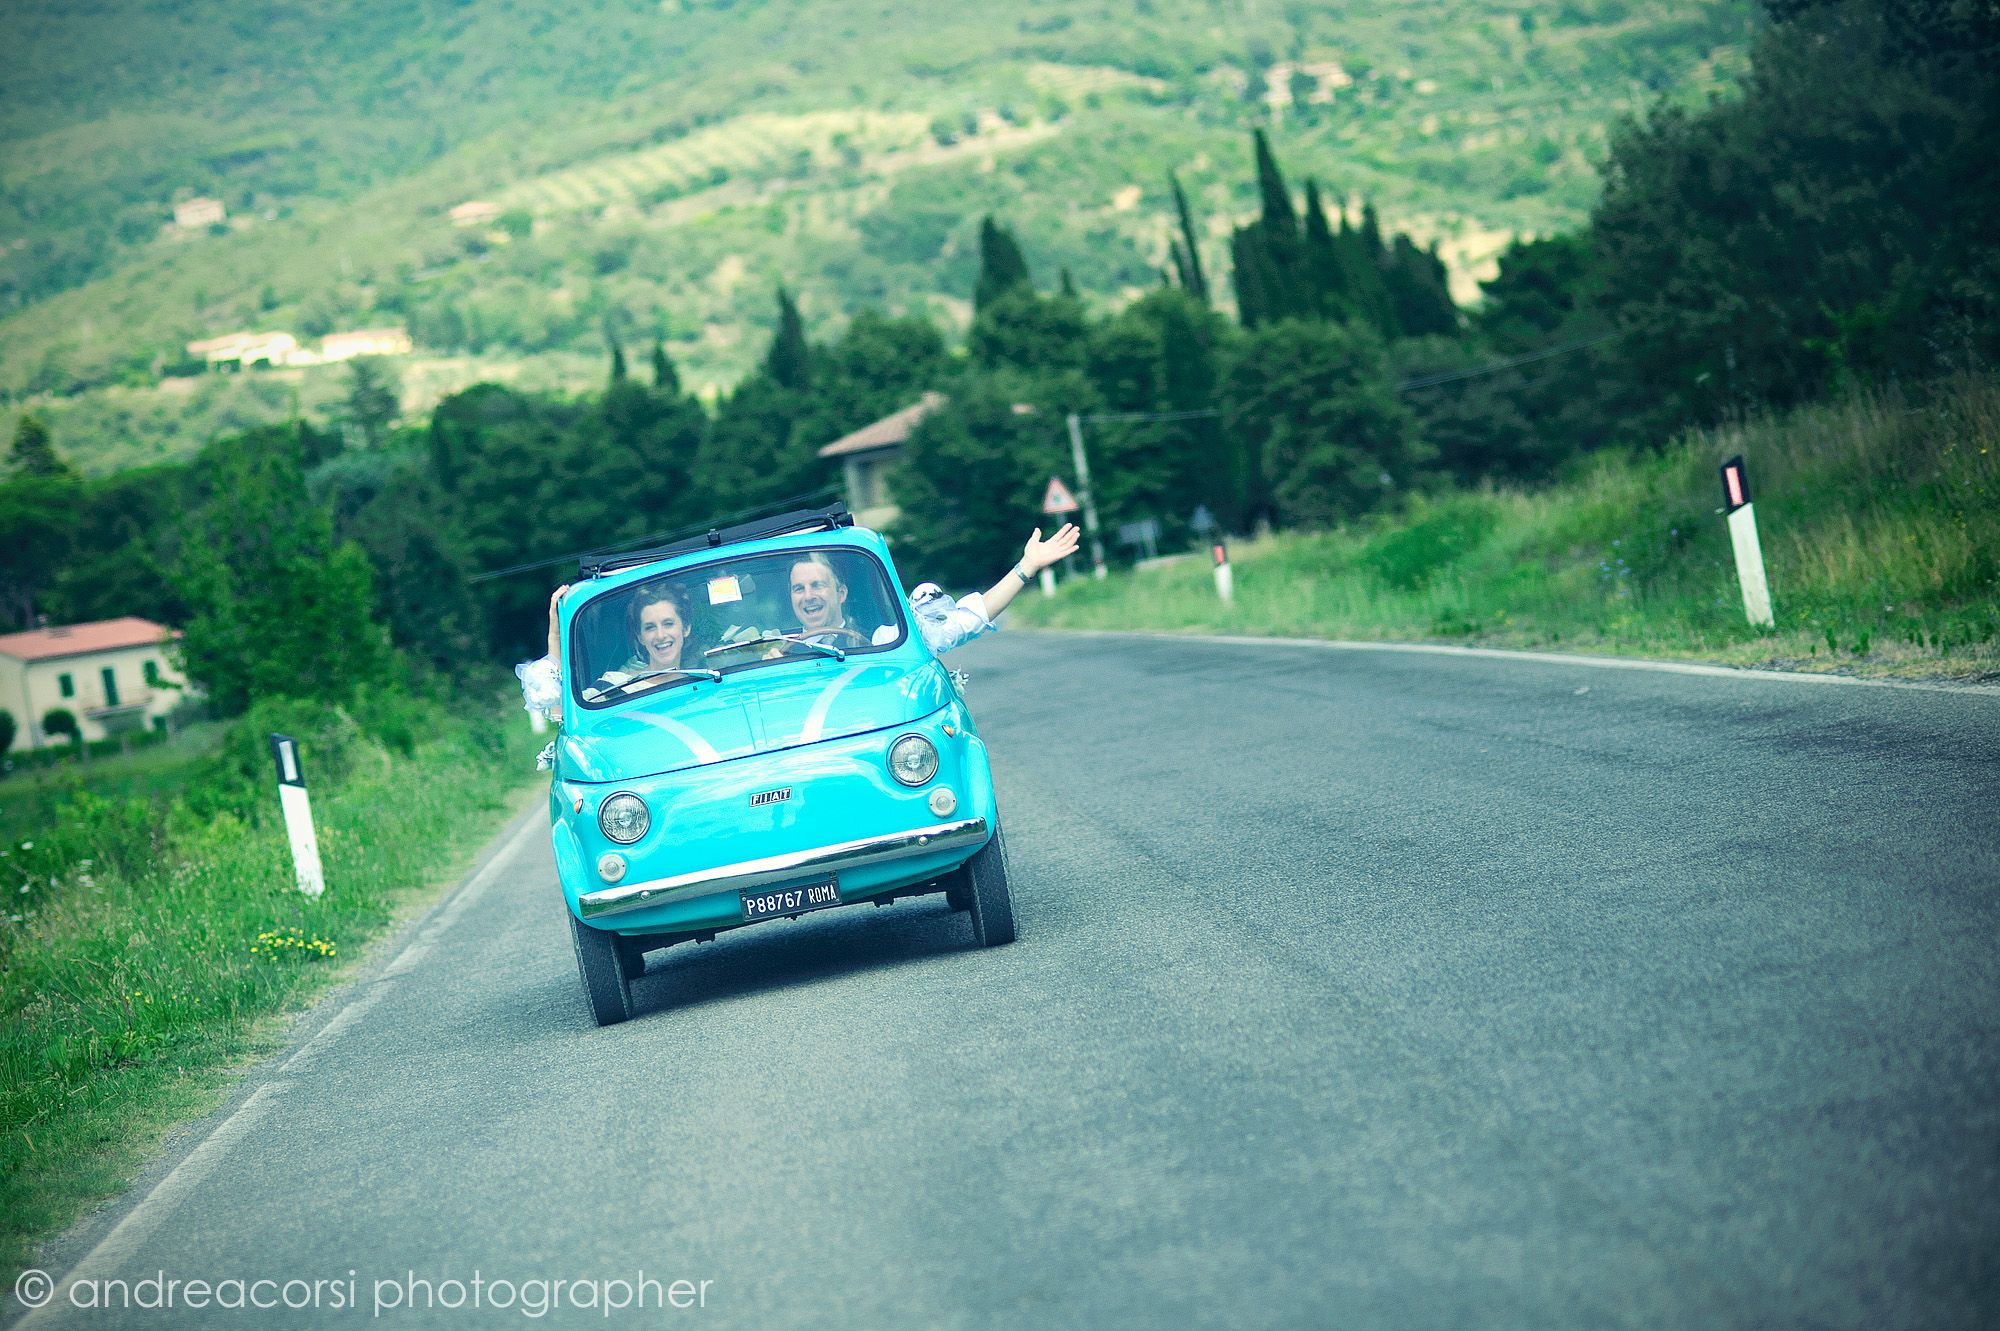 Vintage Fiat 500 in the tuscan countryside....pricelss